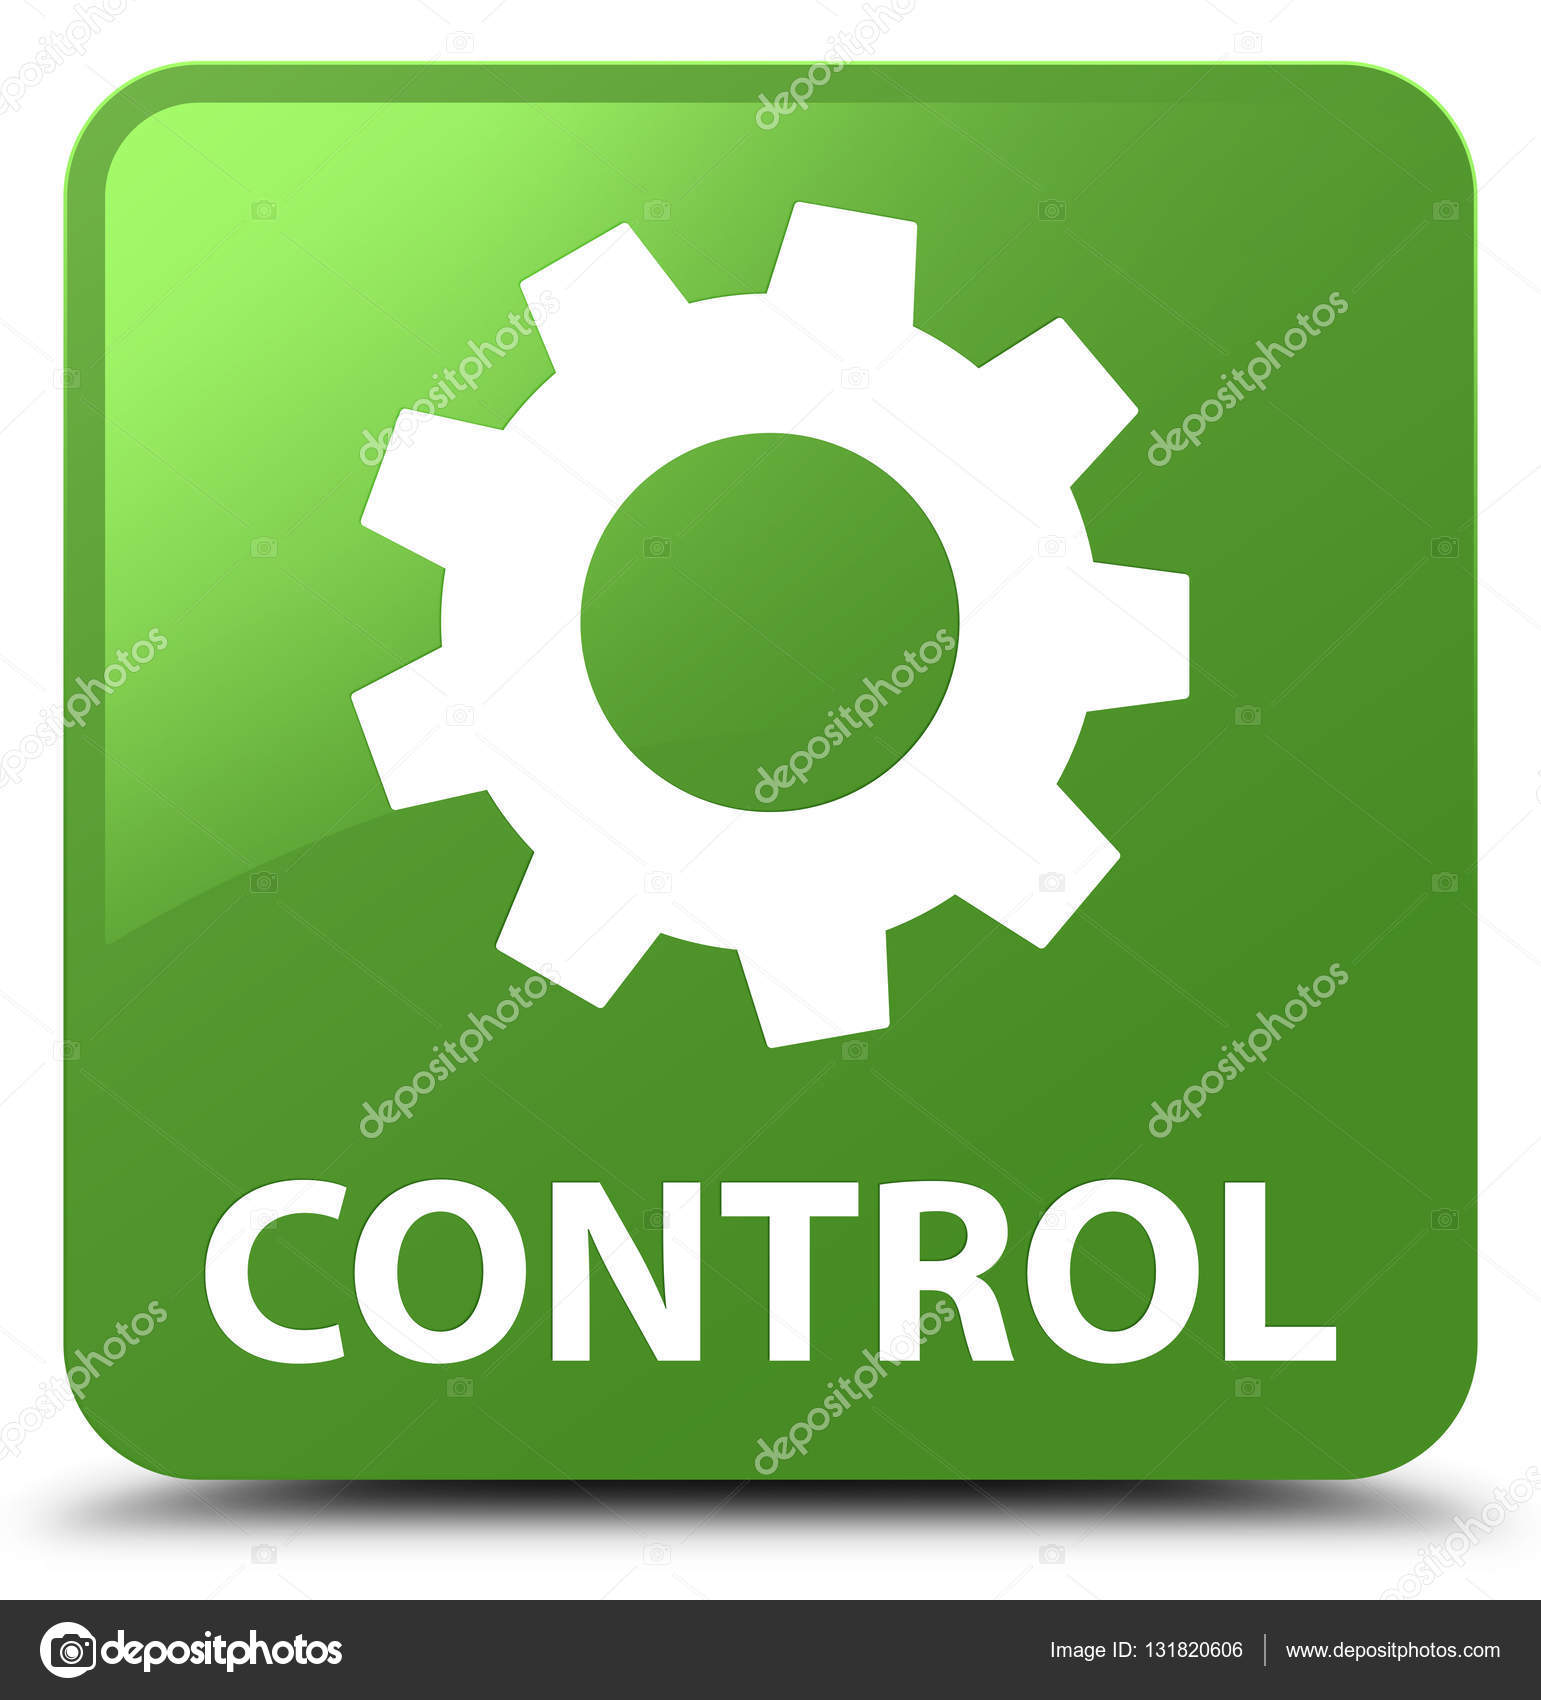 Control (settings icon) soft green square button ? Stock Photo ? FaysalAhamed #131820606